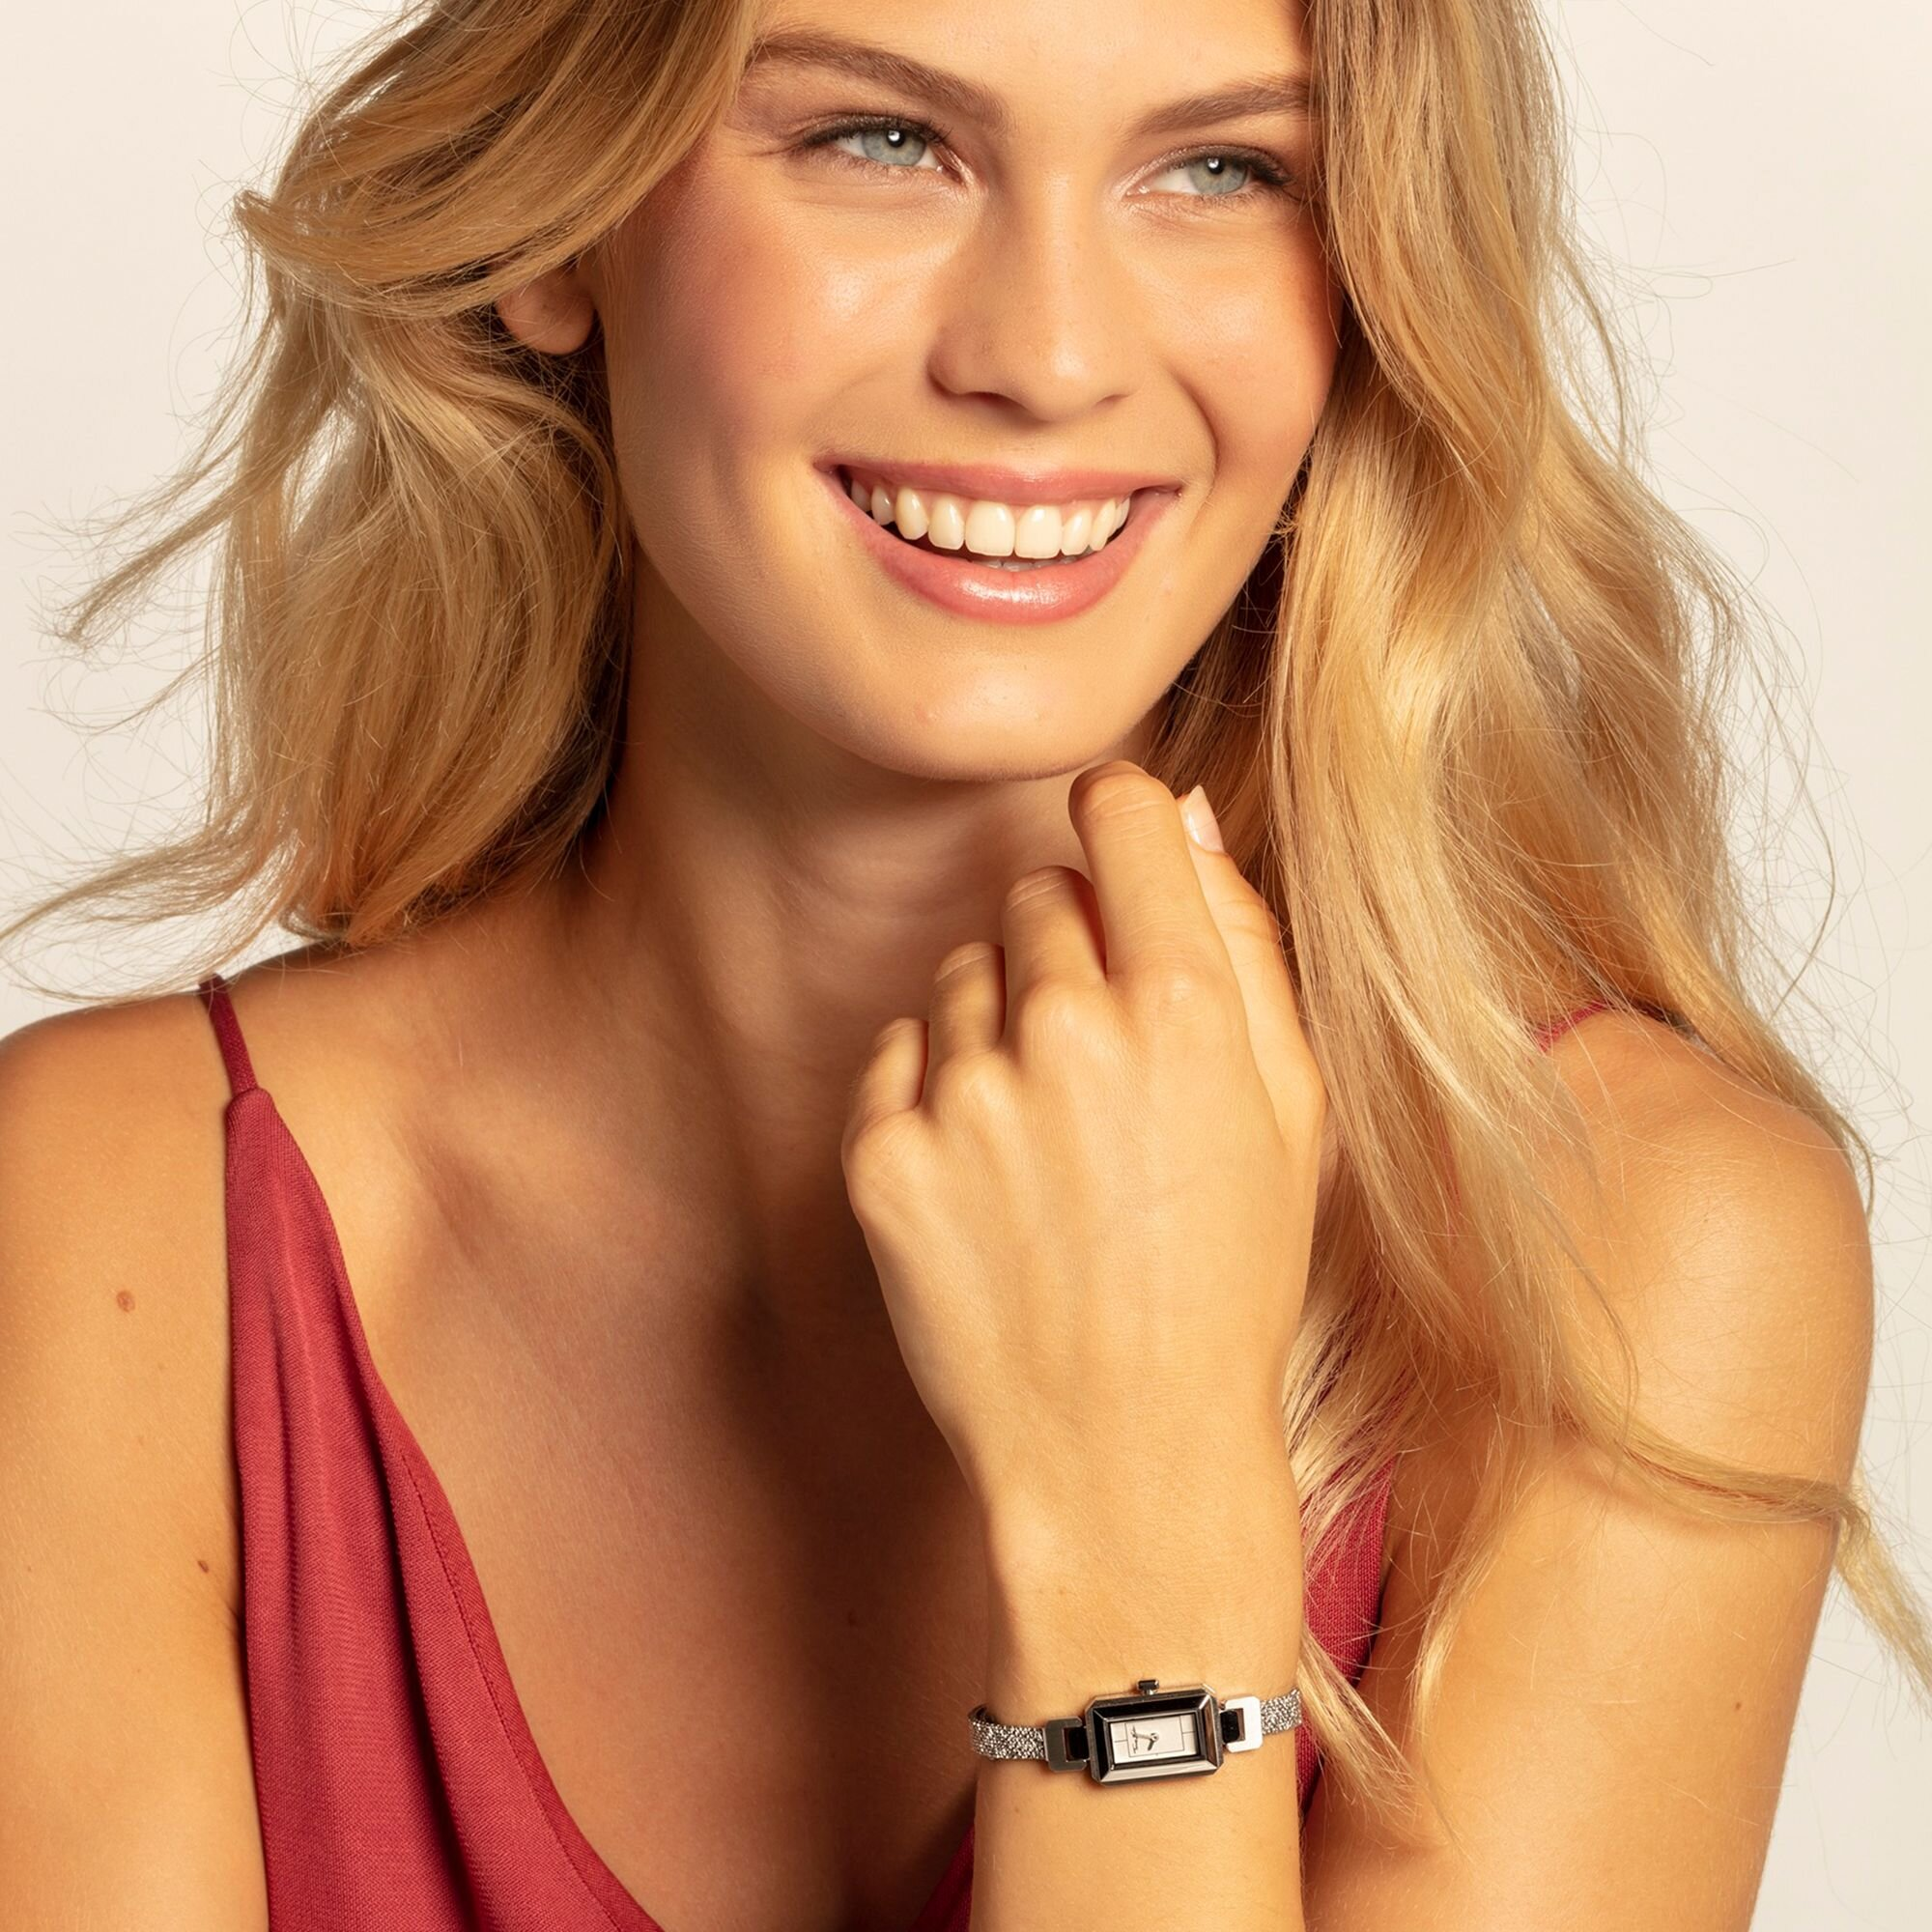 up to 70% off watch sale - Watches are stunning pieces of jewellery. Transform your everyday outfit into a chic look with striking models in a variety of shapes, materials, colours and designs. Perfect as presents for graduations, but also to celebrate birthdays and mark special occasions, or even as very special gifts for weddings. The options are really infinite!